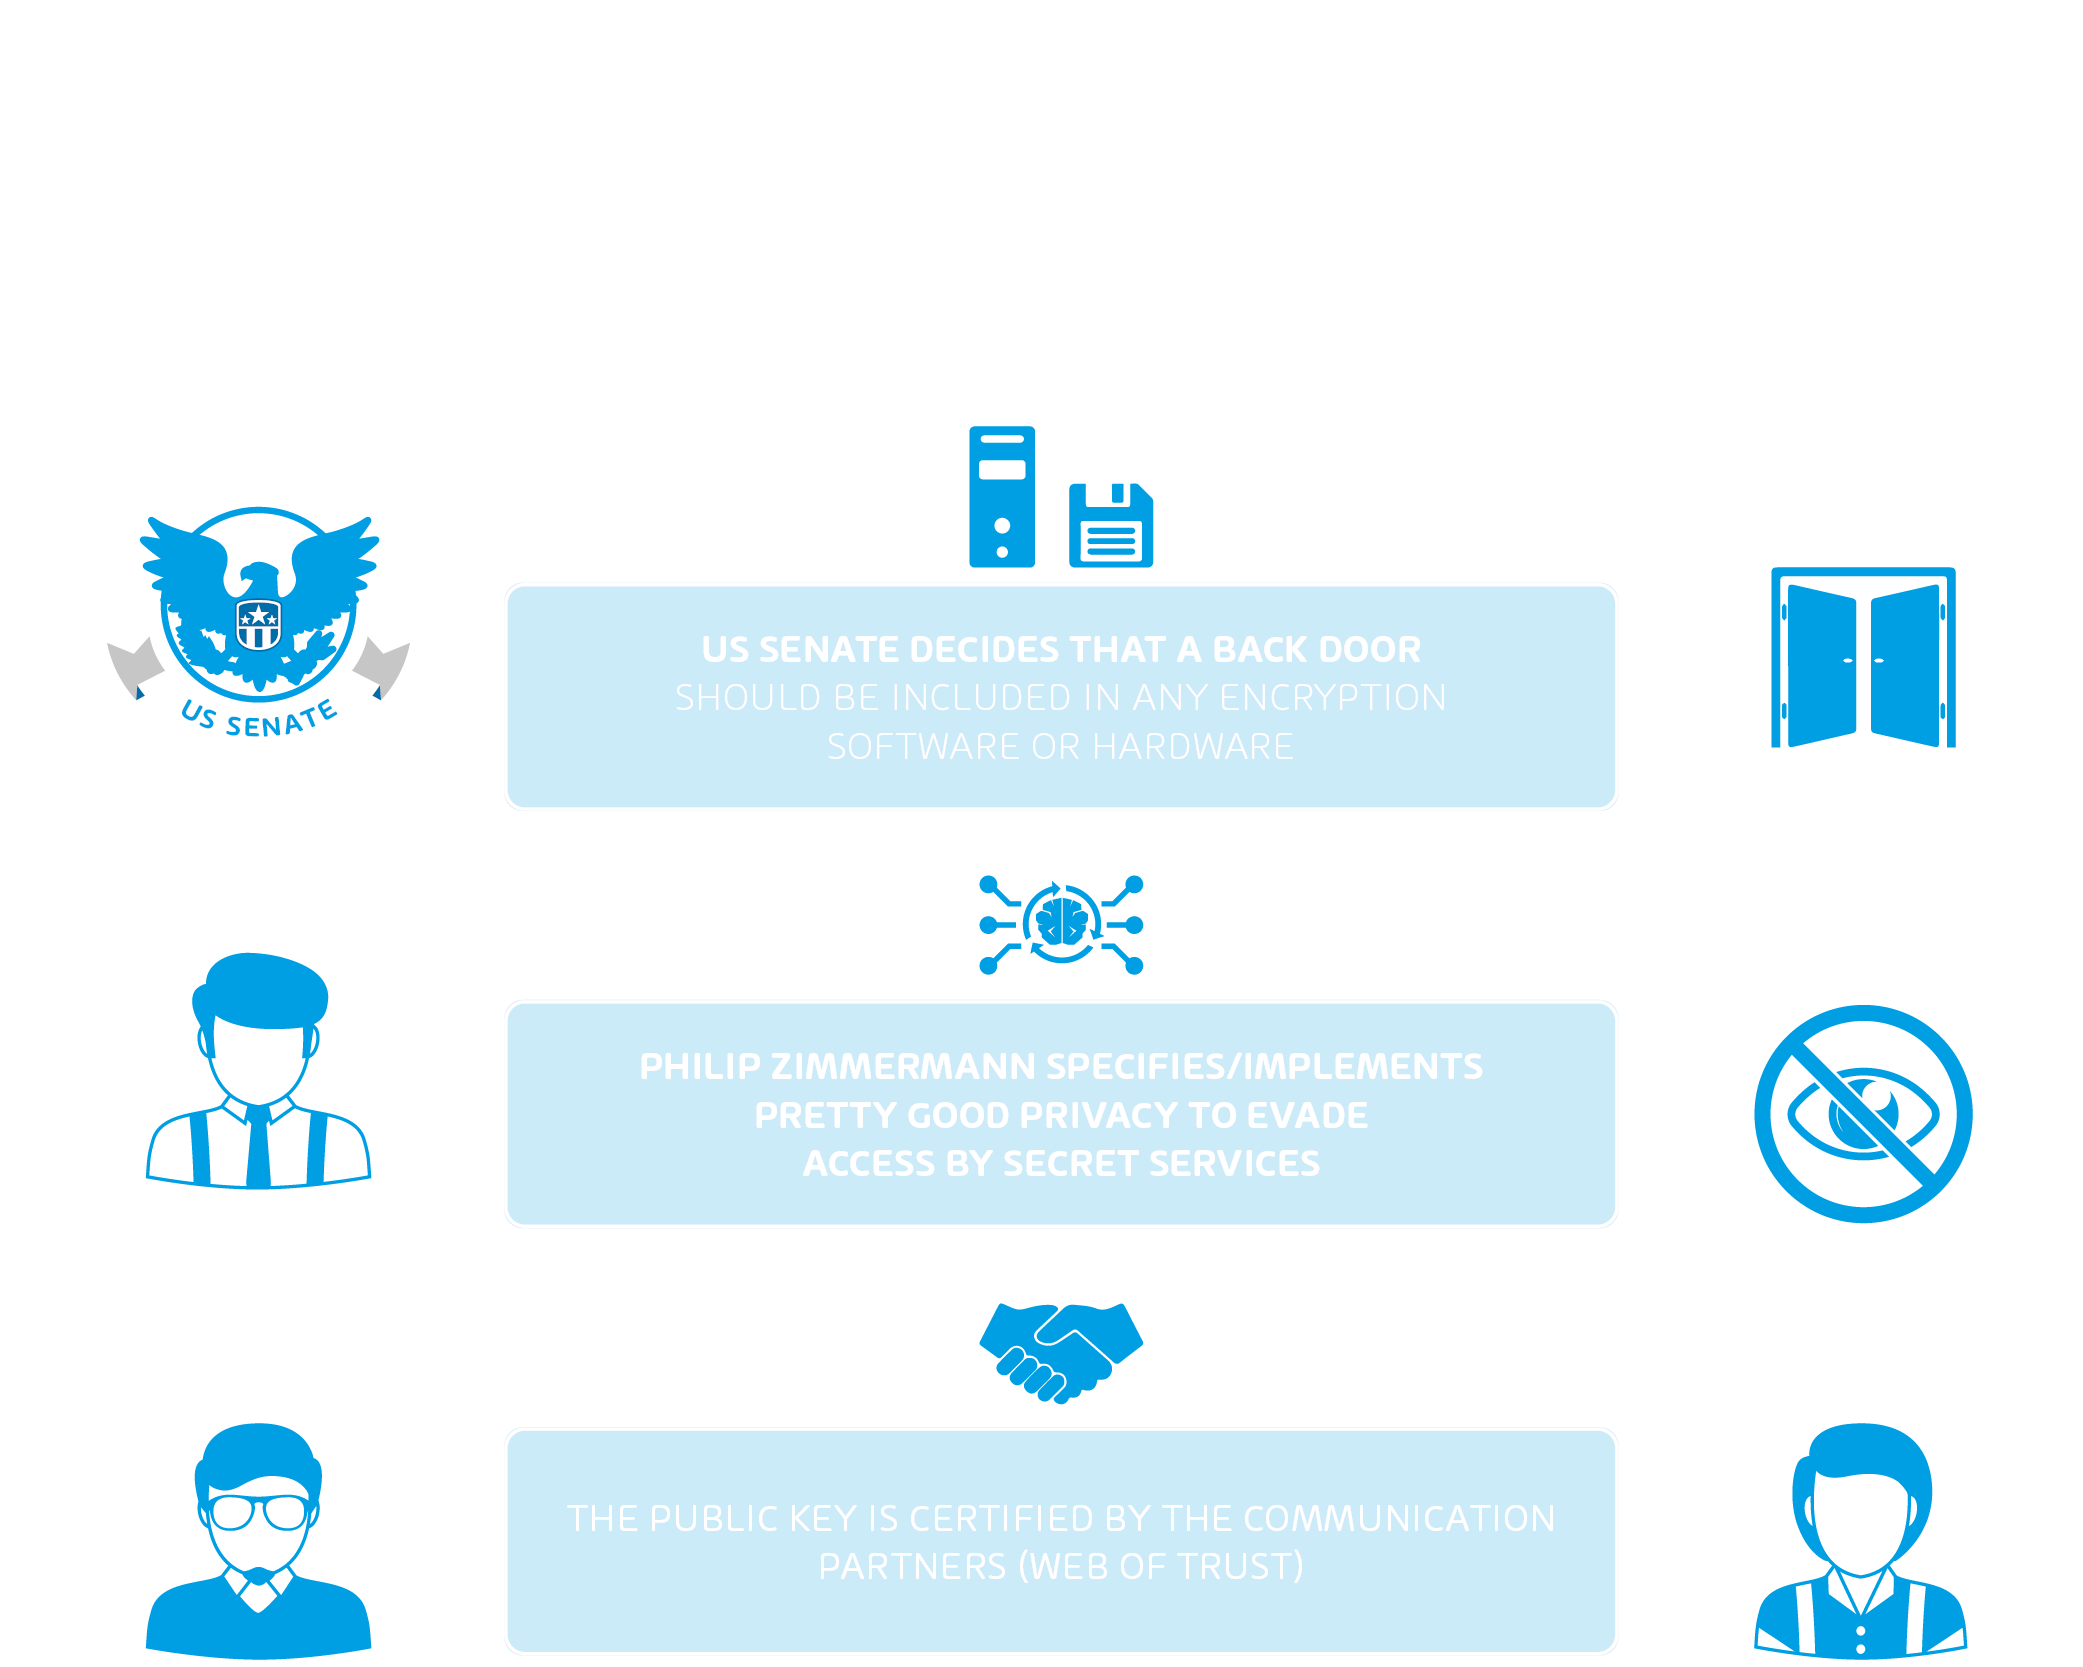 Infographic about PGP (Pretty Good Privacy)